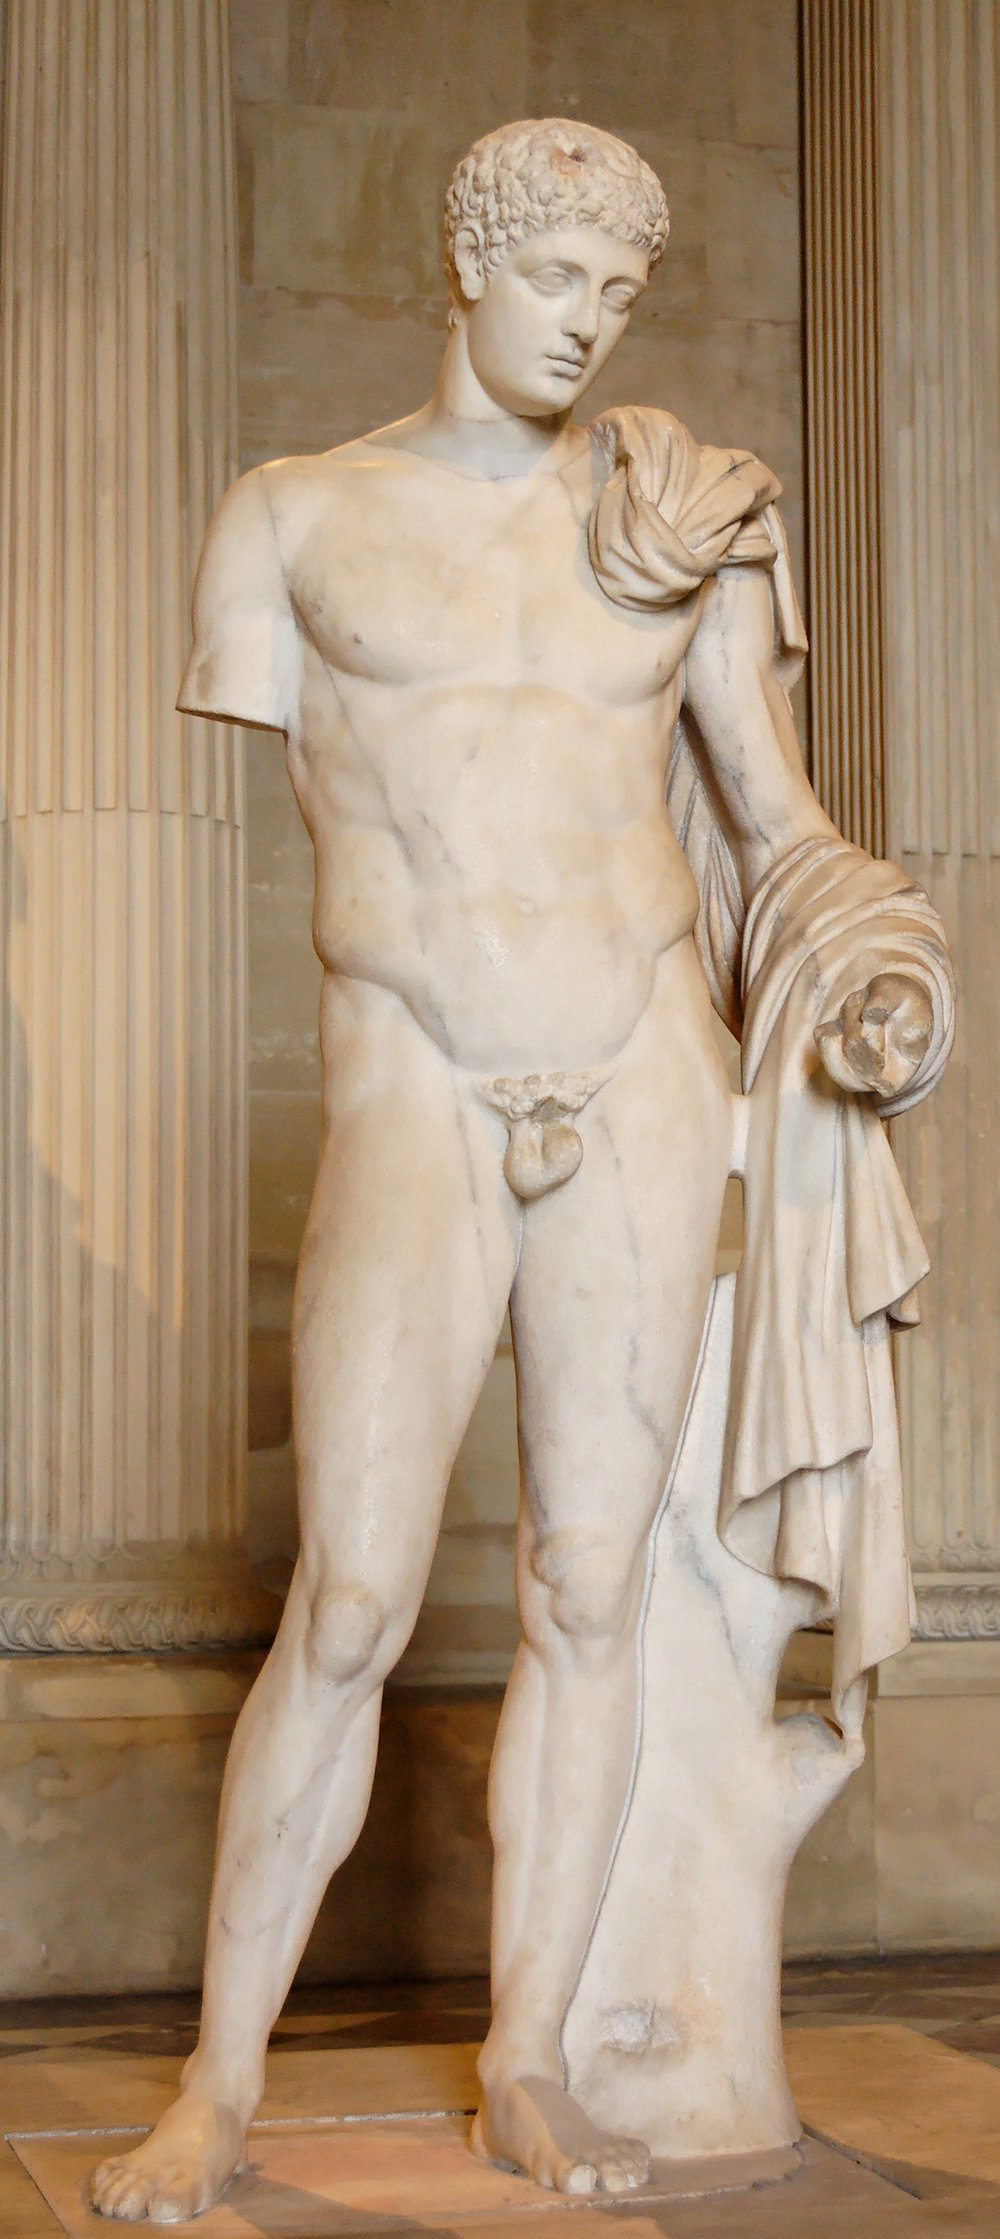 Hermes statue in the Louvre Museum